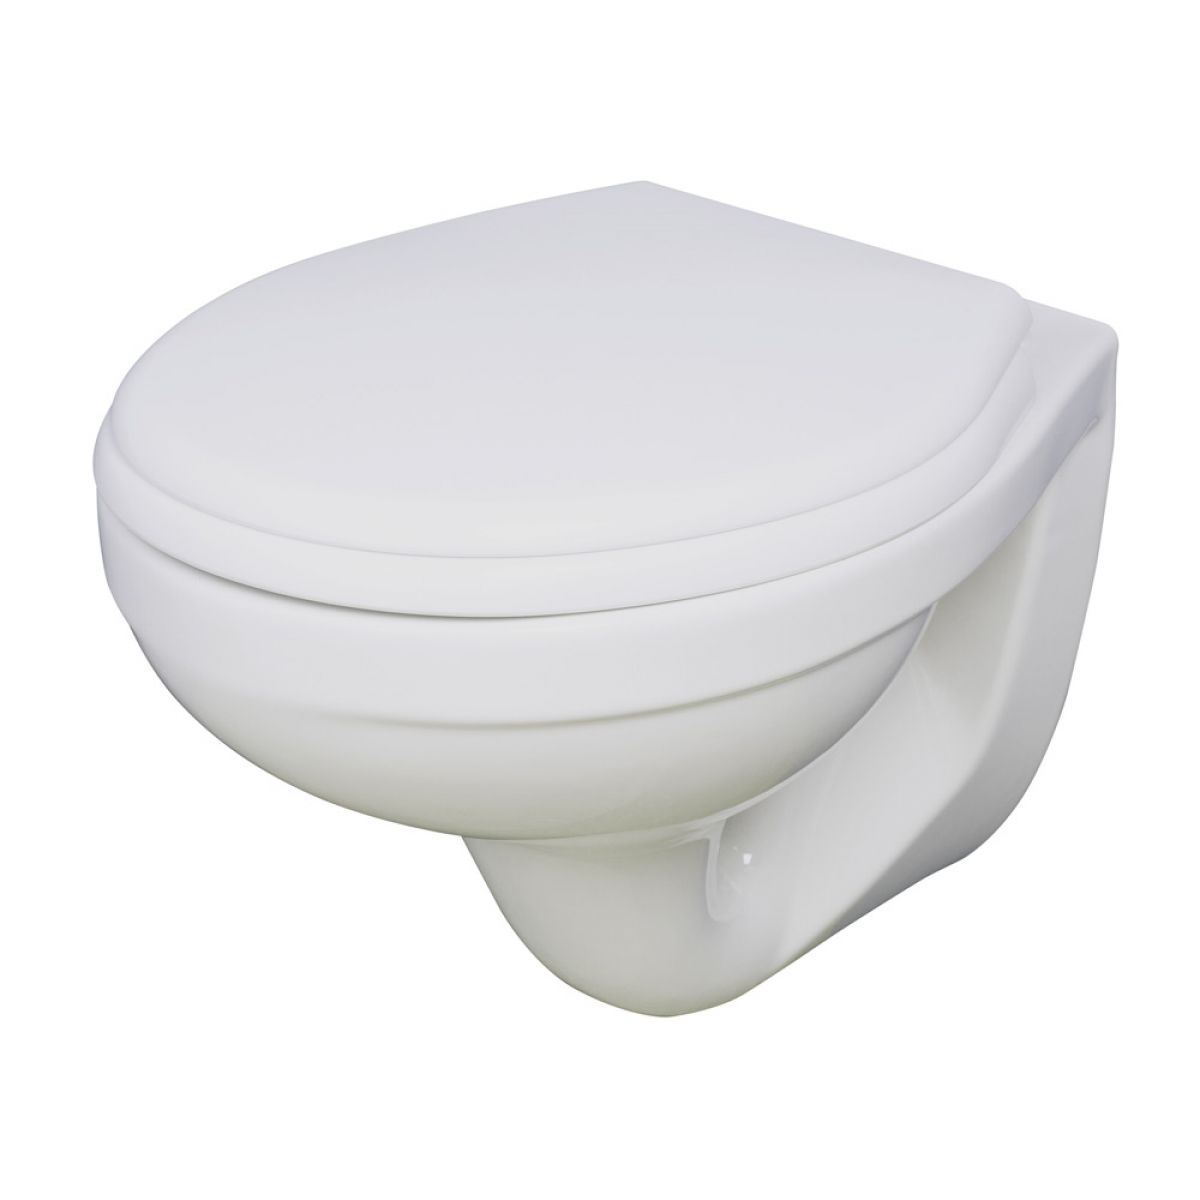 Cassellie Wall Hung Pan with Seat